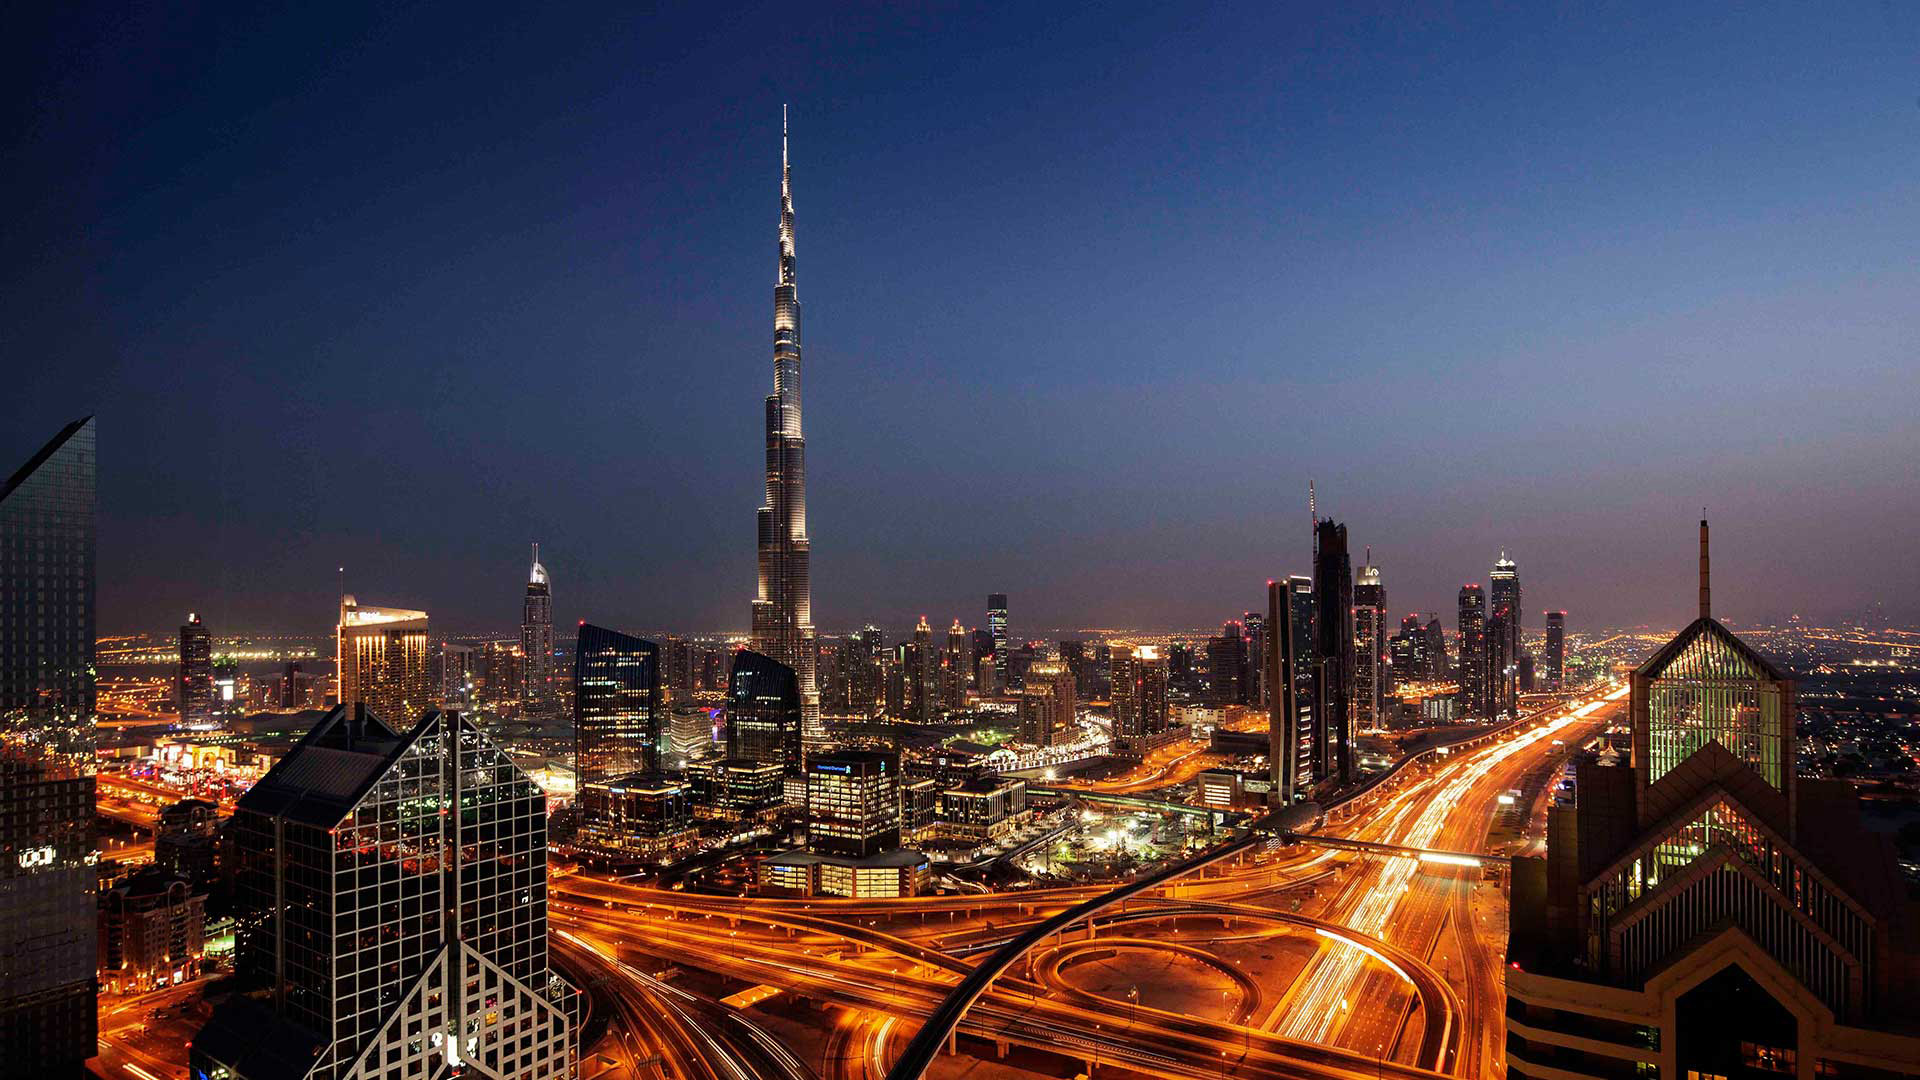 UAE: Reported Covid-19 Prison Outbreaks | Human Rights Watch